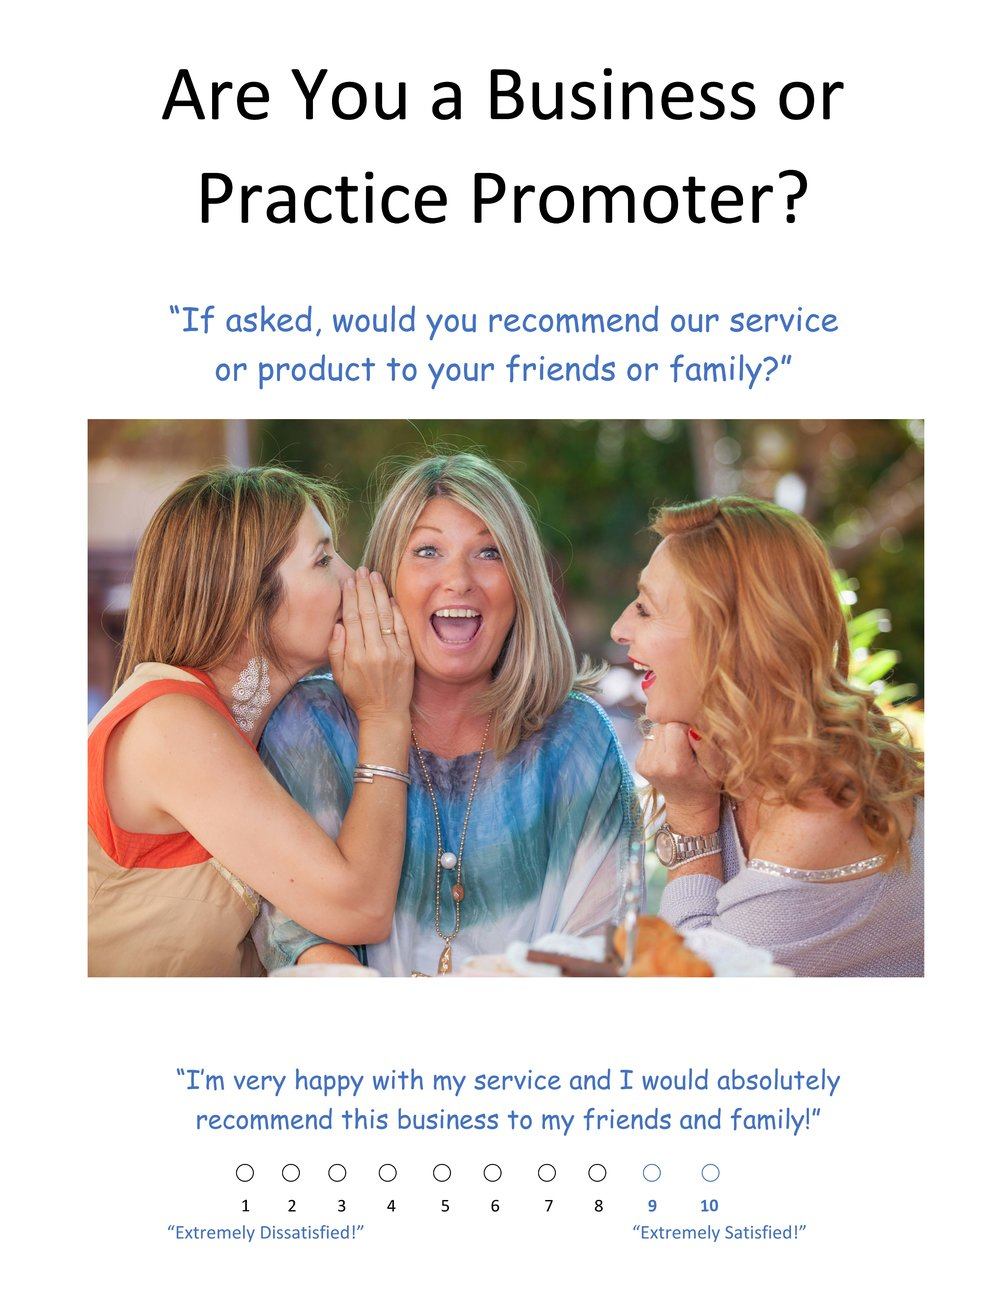 Net Promoter Score Prompt Poster - Display your prompt on the wall or counter-top in a small business setting.